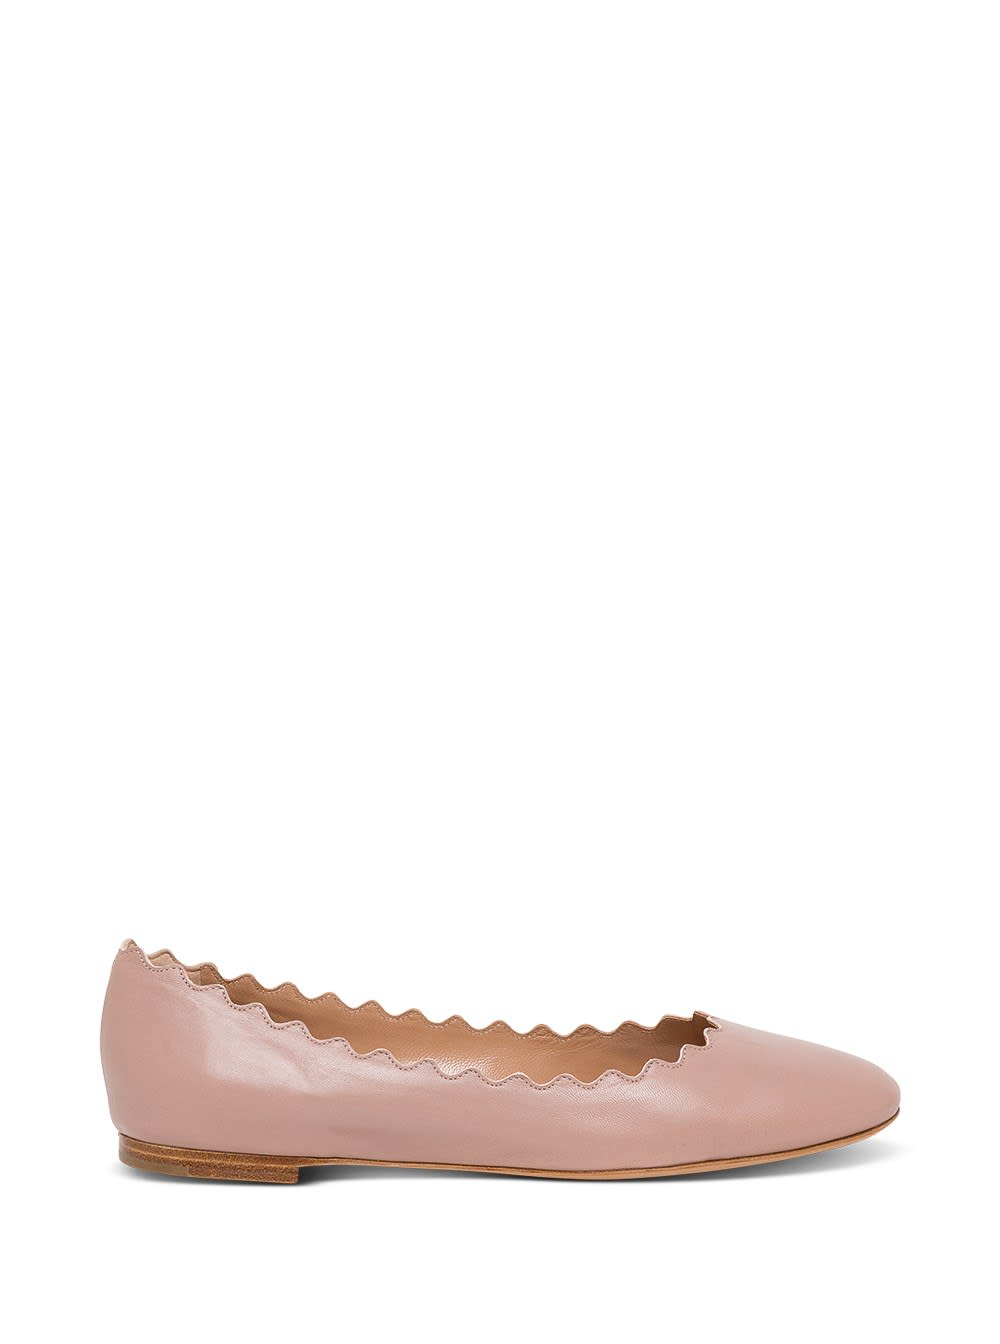 Chloé LAUREN FLAT SHOES